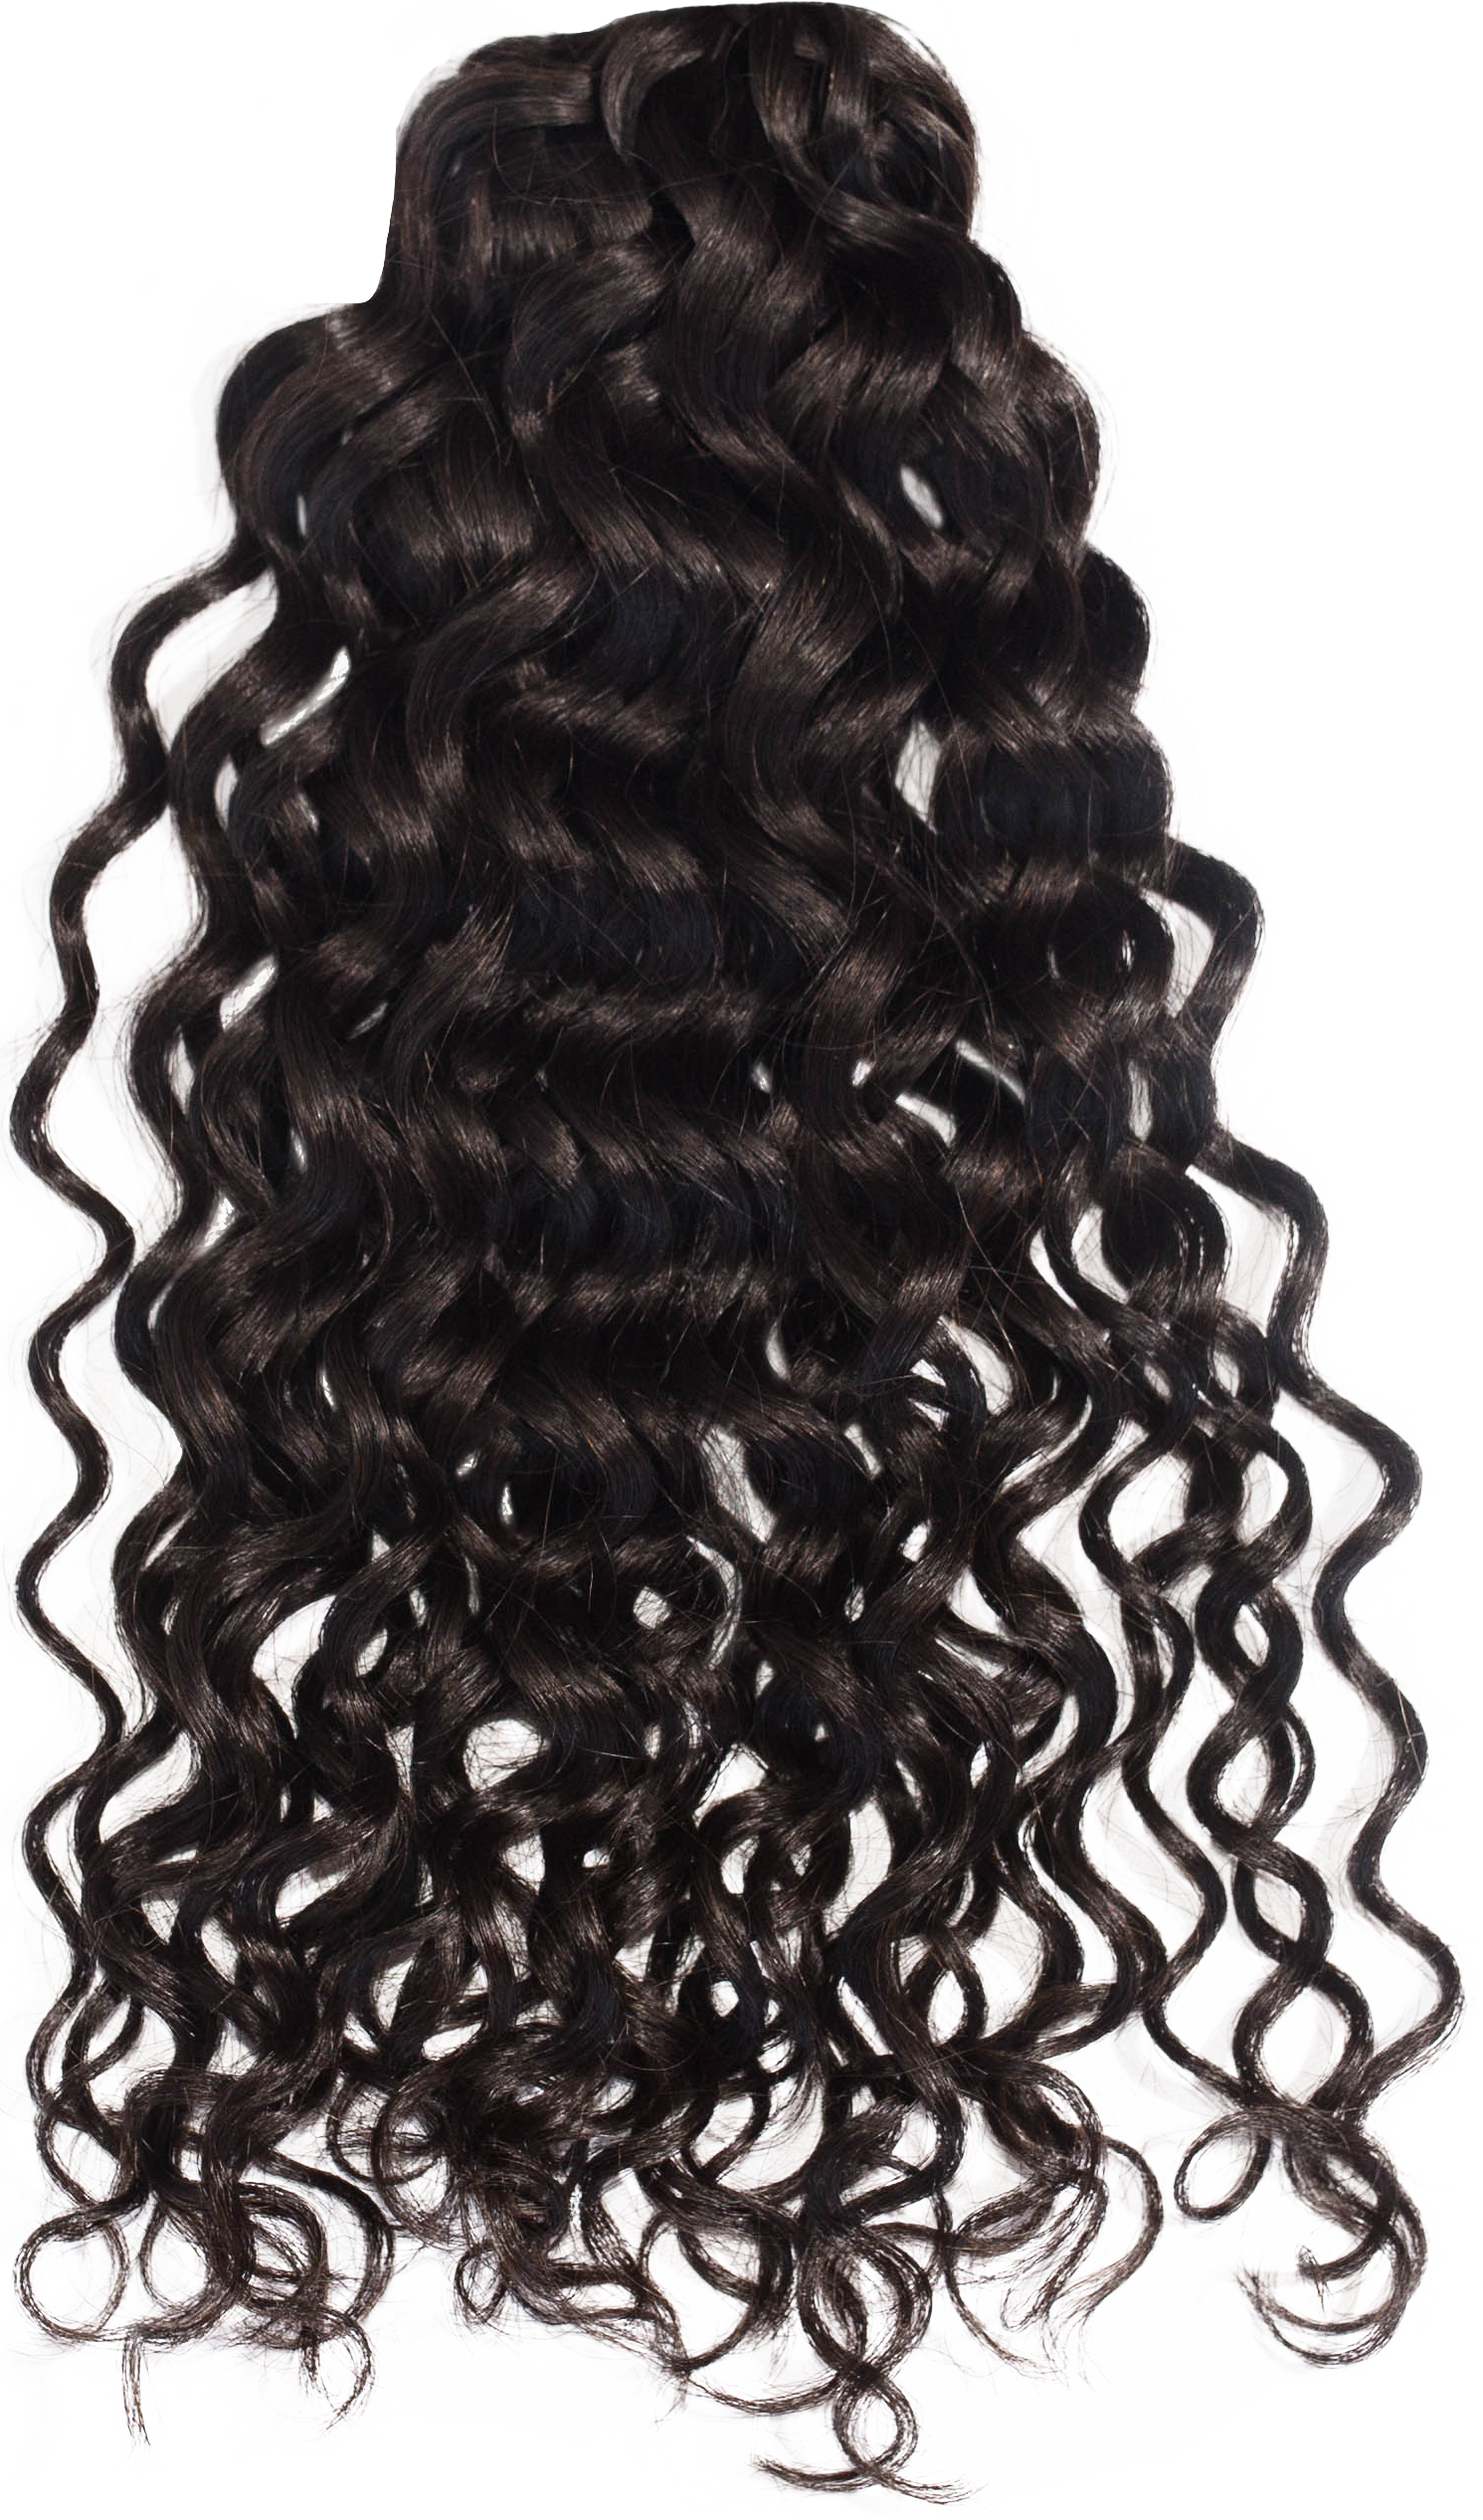 CURLY HAIR FROM BEHIND LOOK